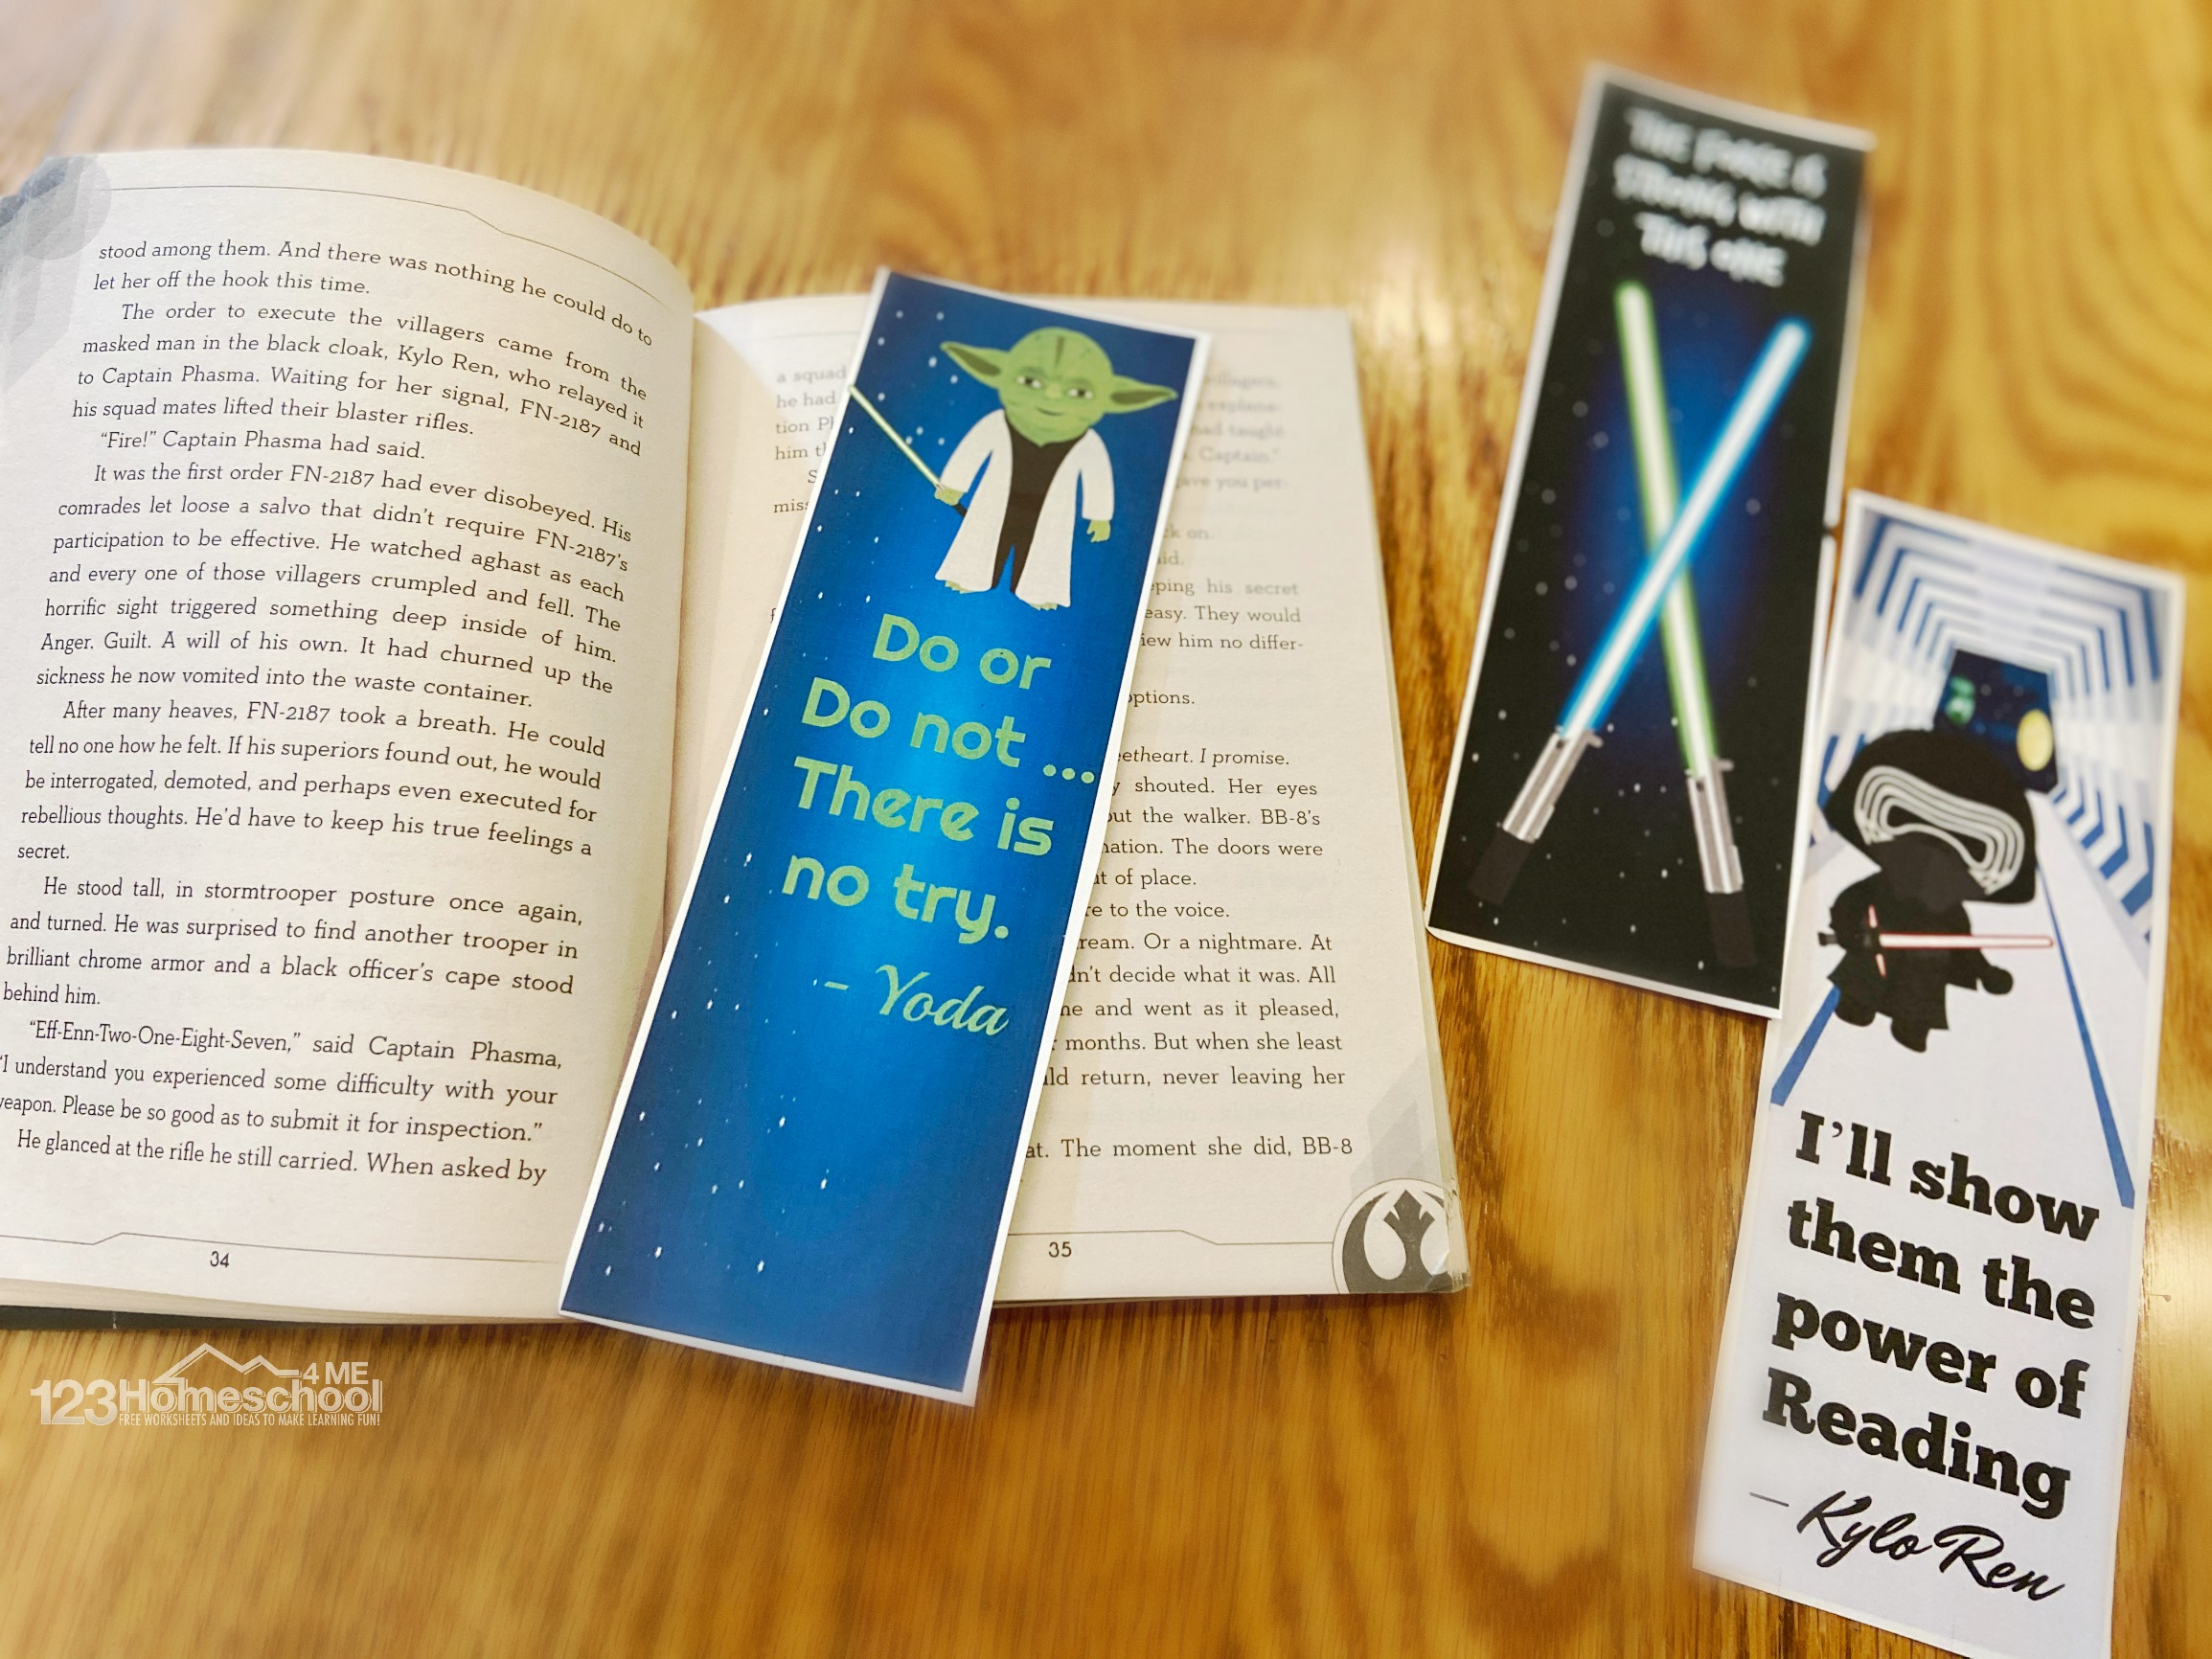 bookmarks for kids with yoda saying do r do not, there is no try, light sabers, and kylo ren